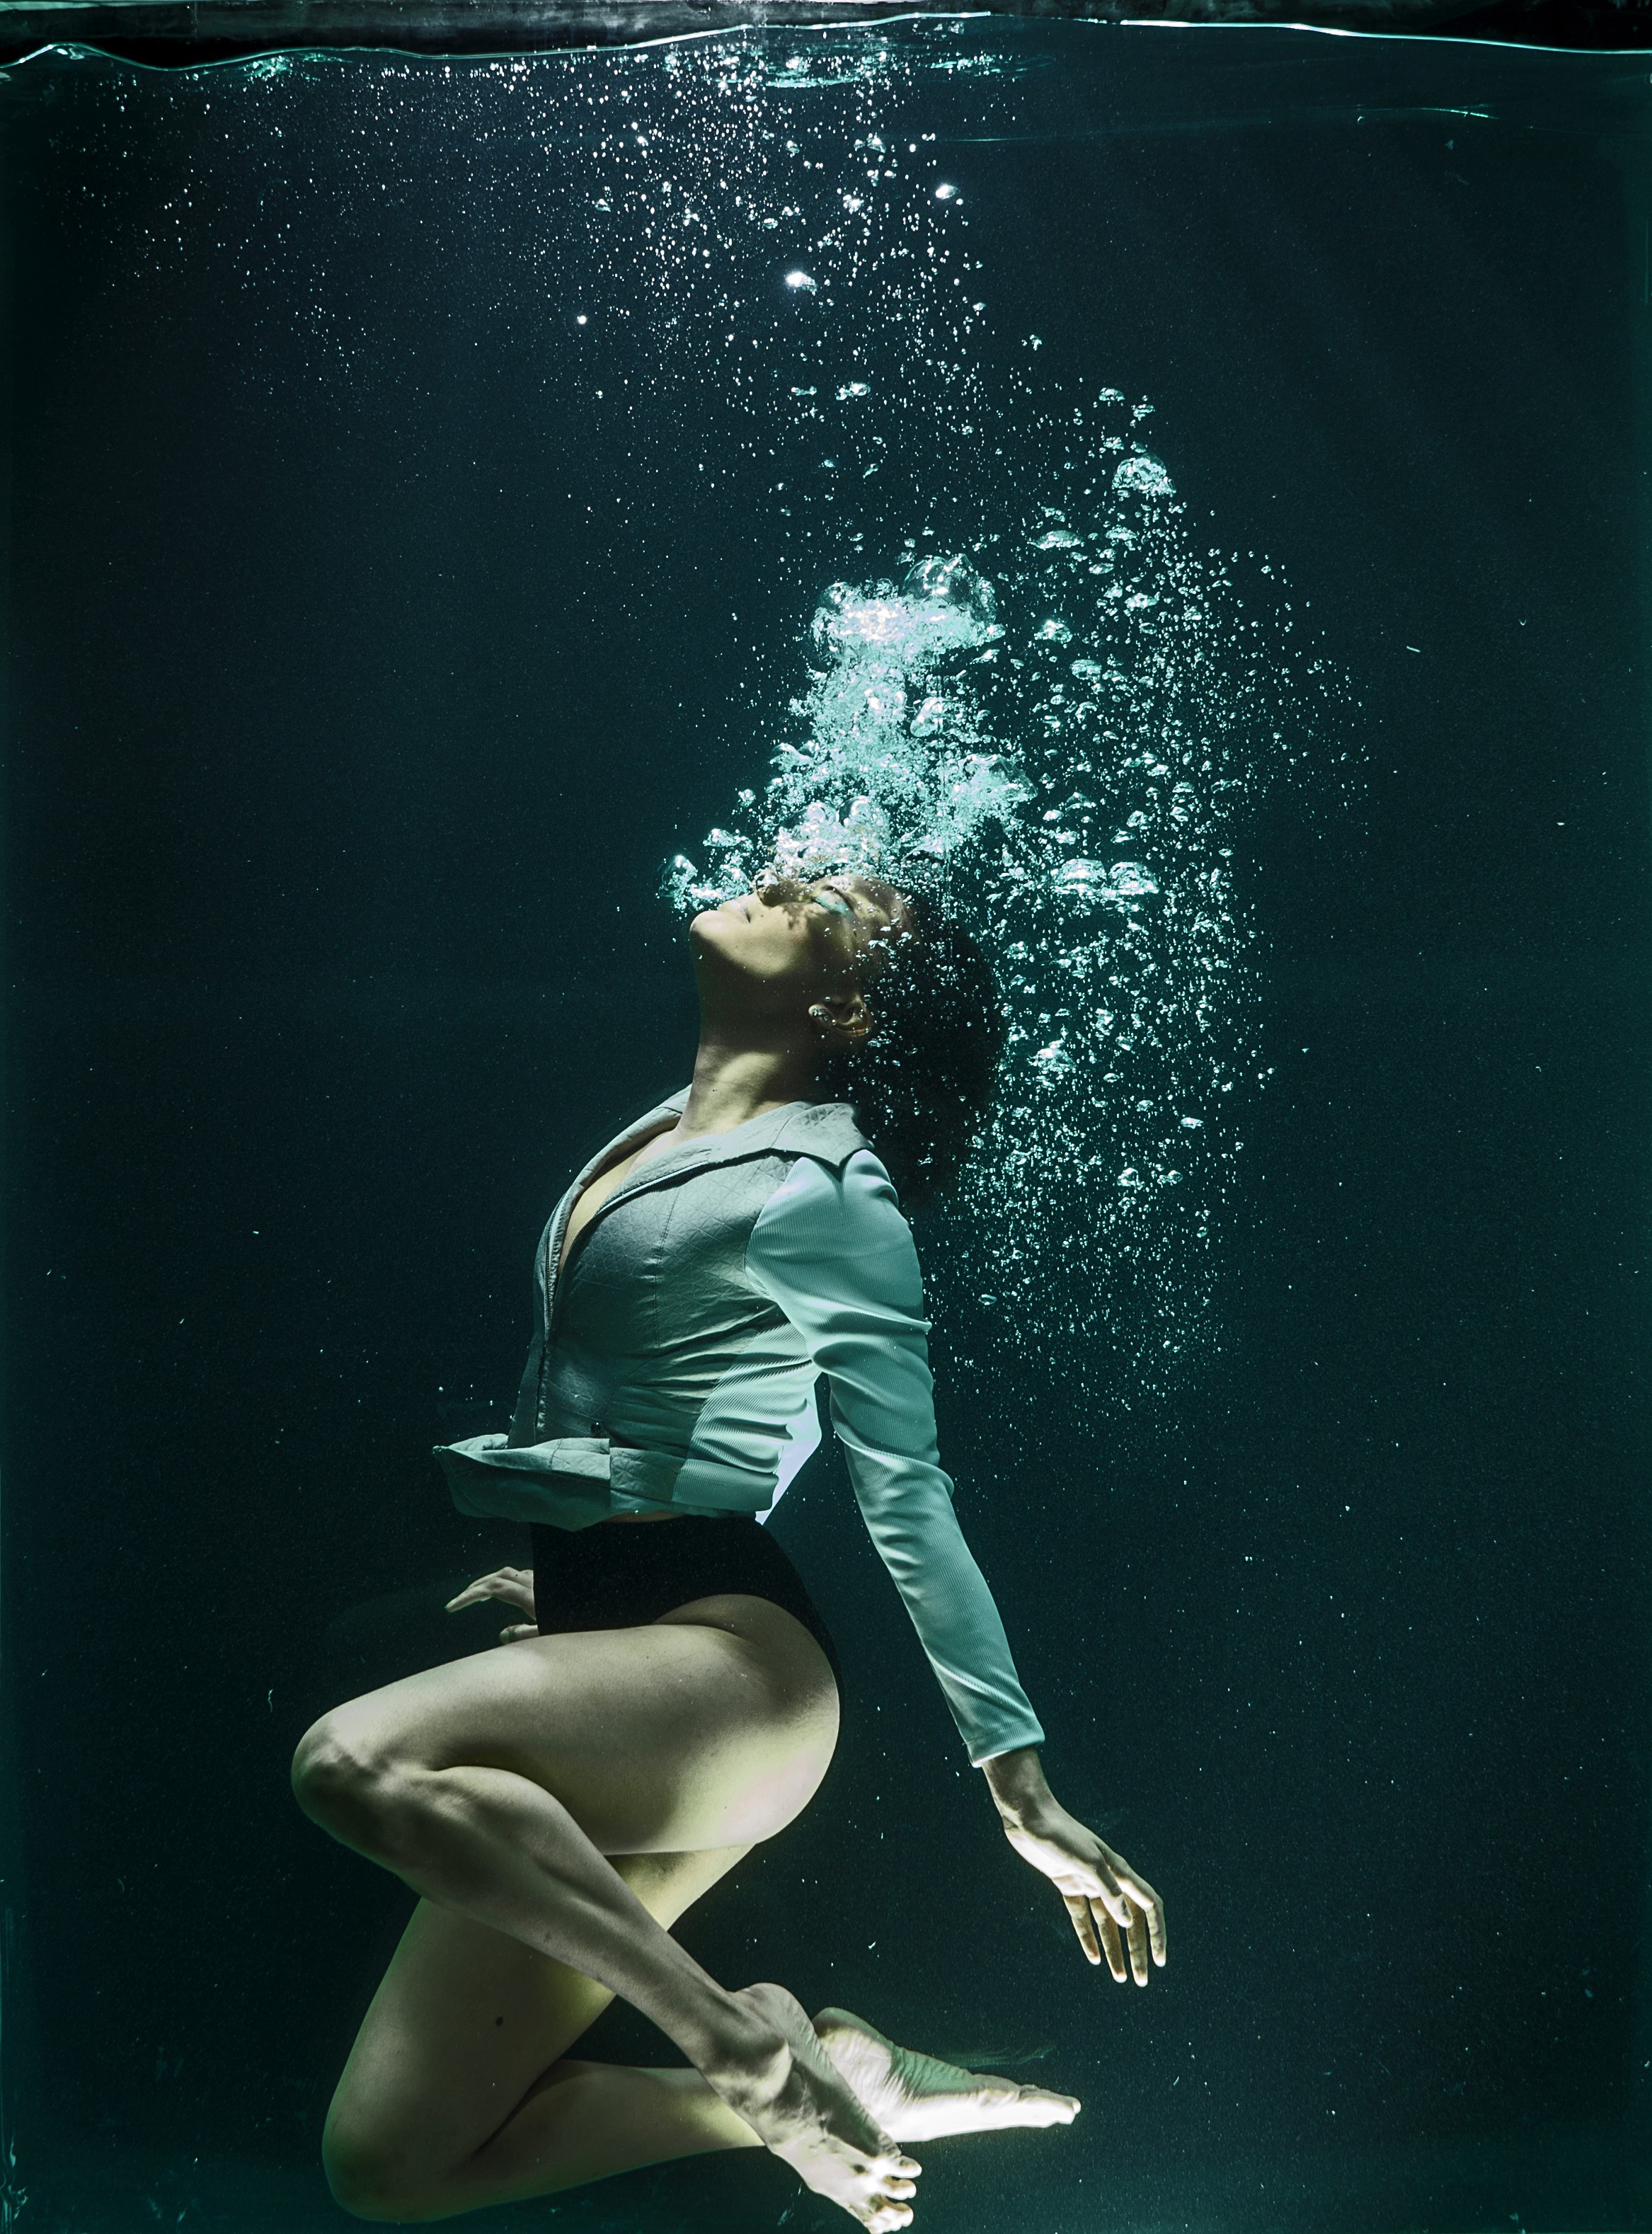 Woman in deep bubbly water